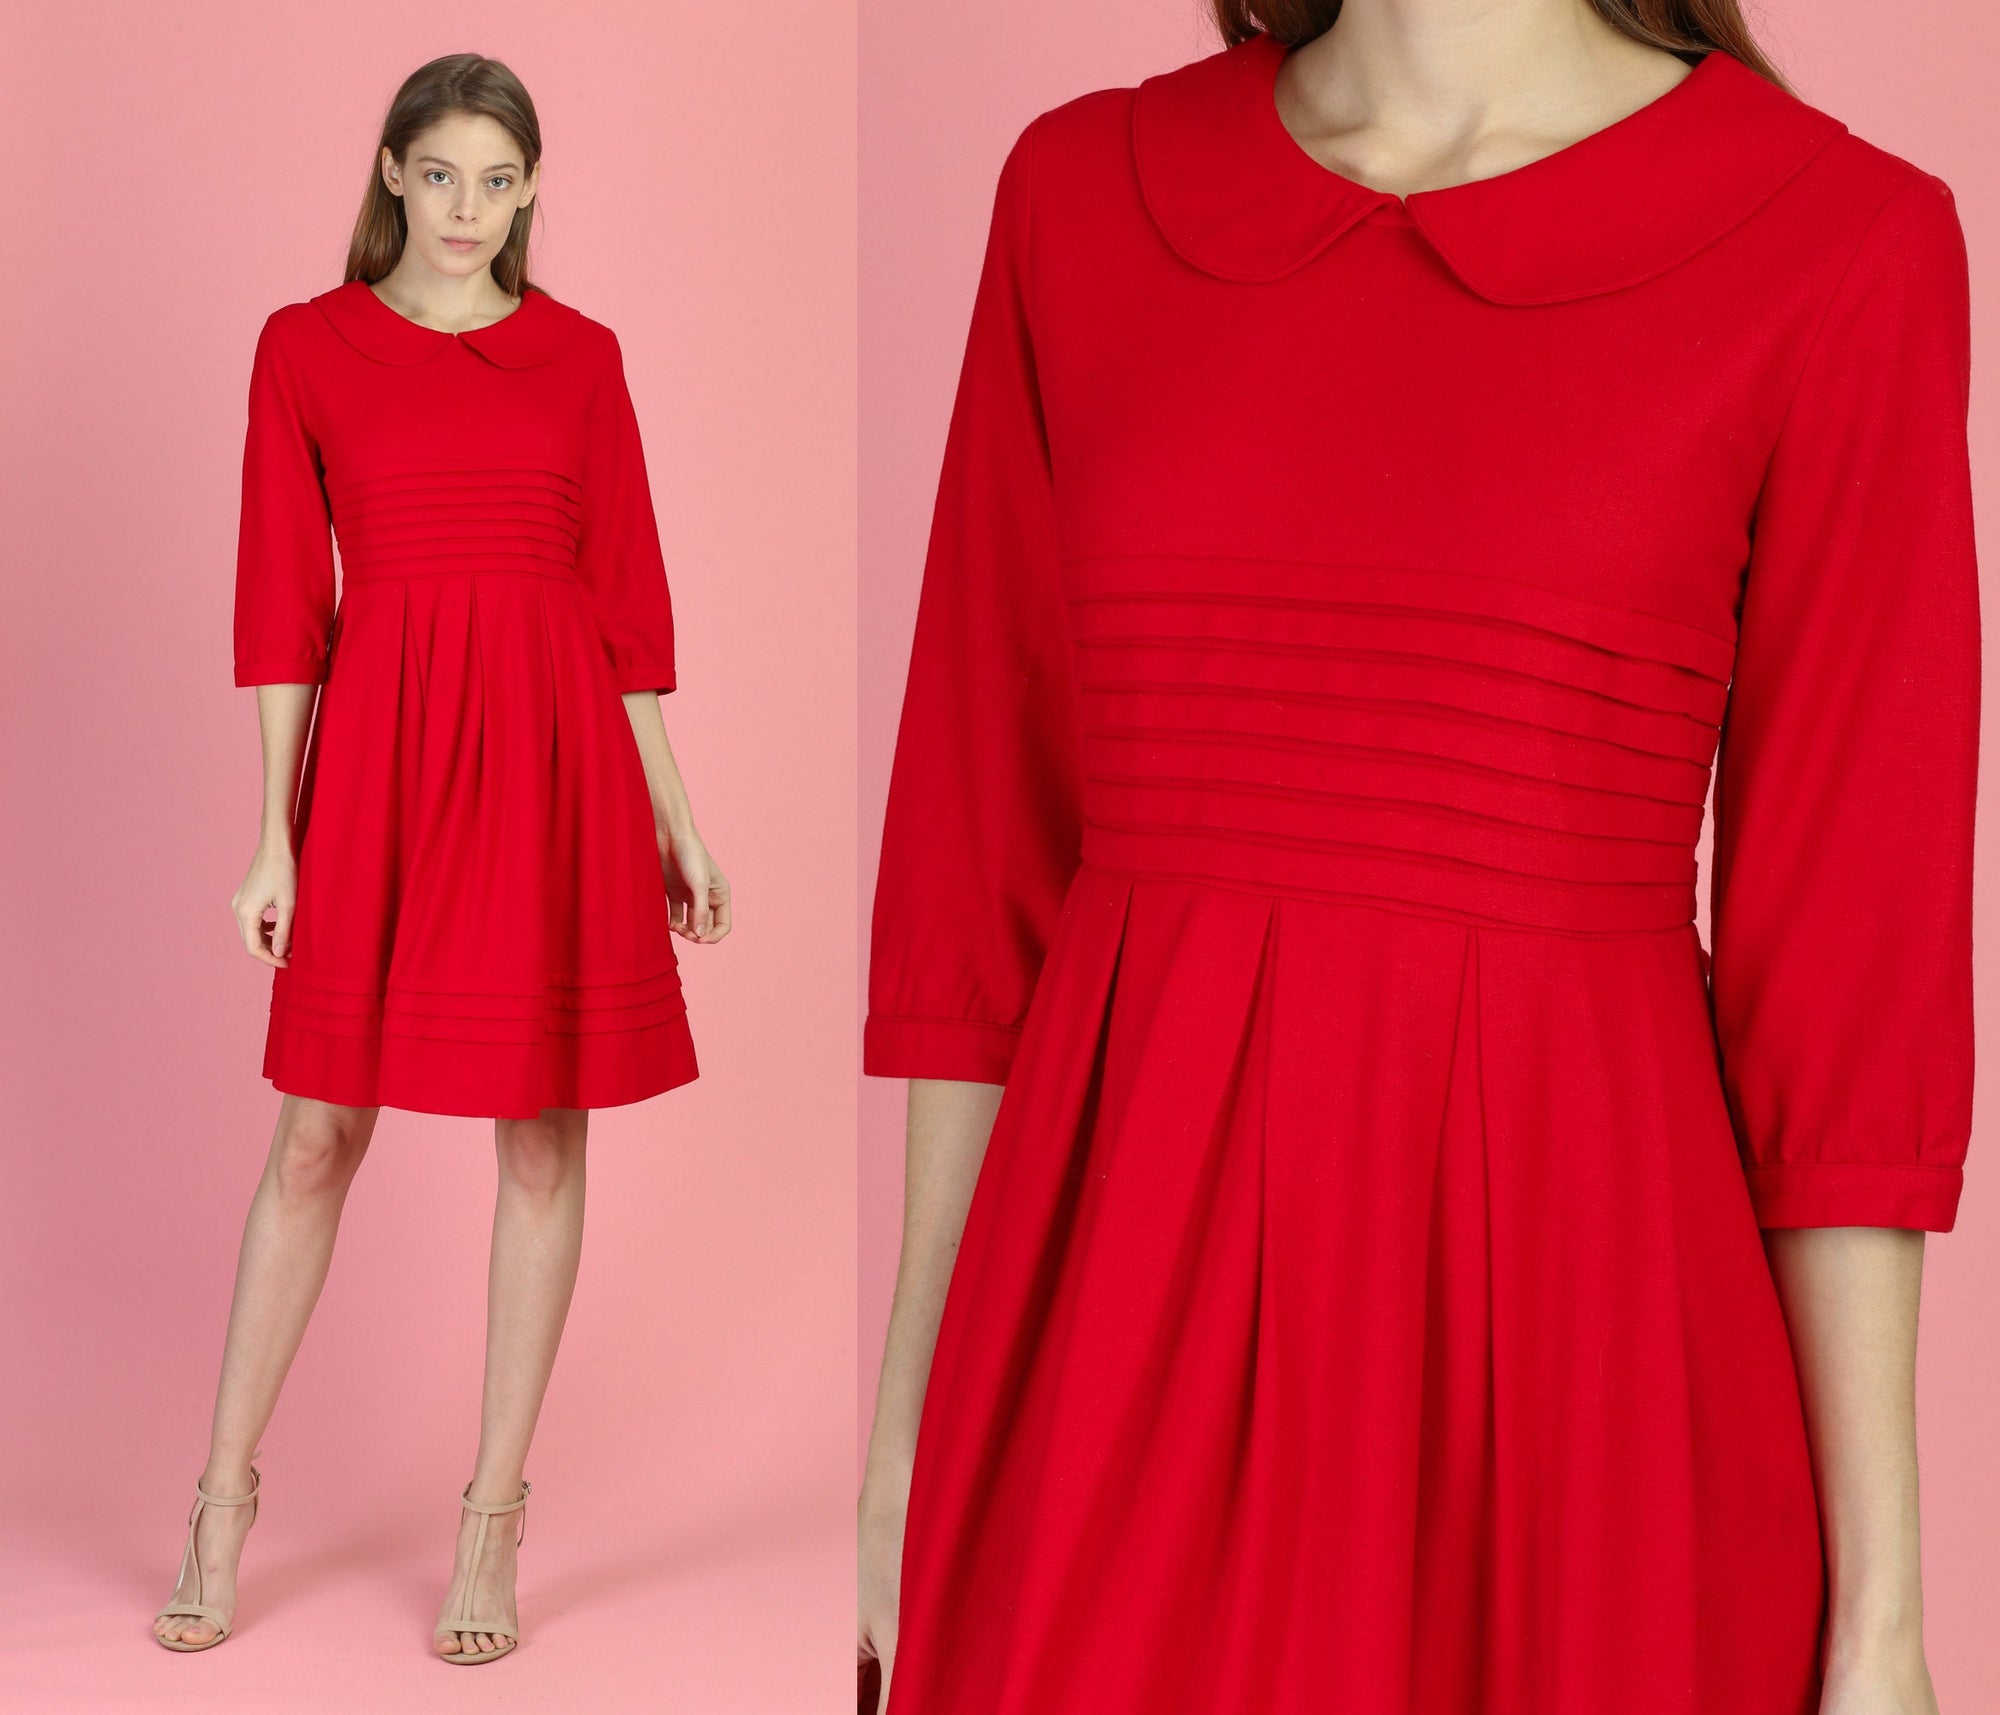 Vintage Miu Miu Red Mini Dress - Medium